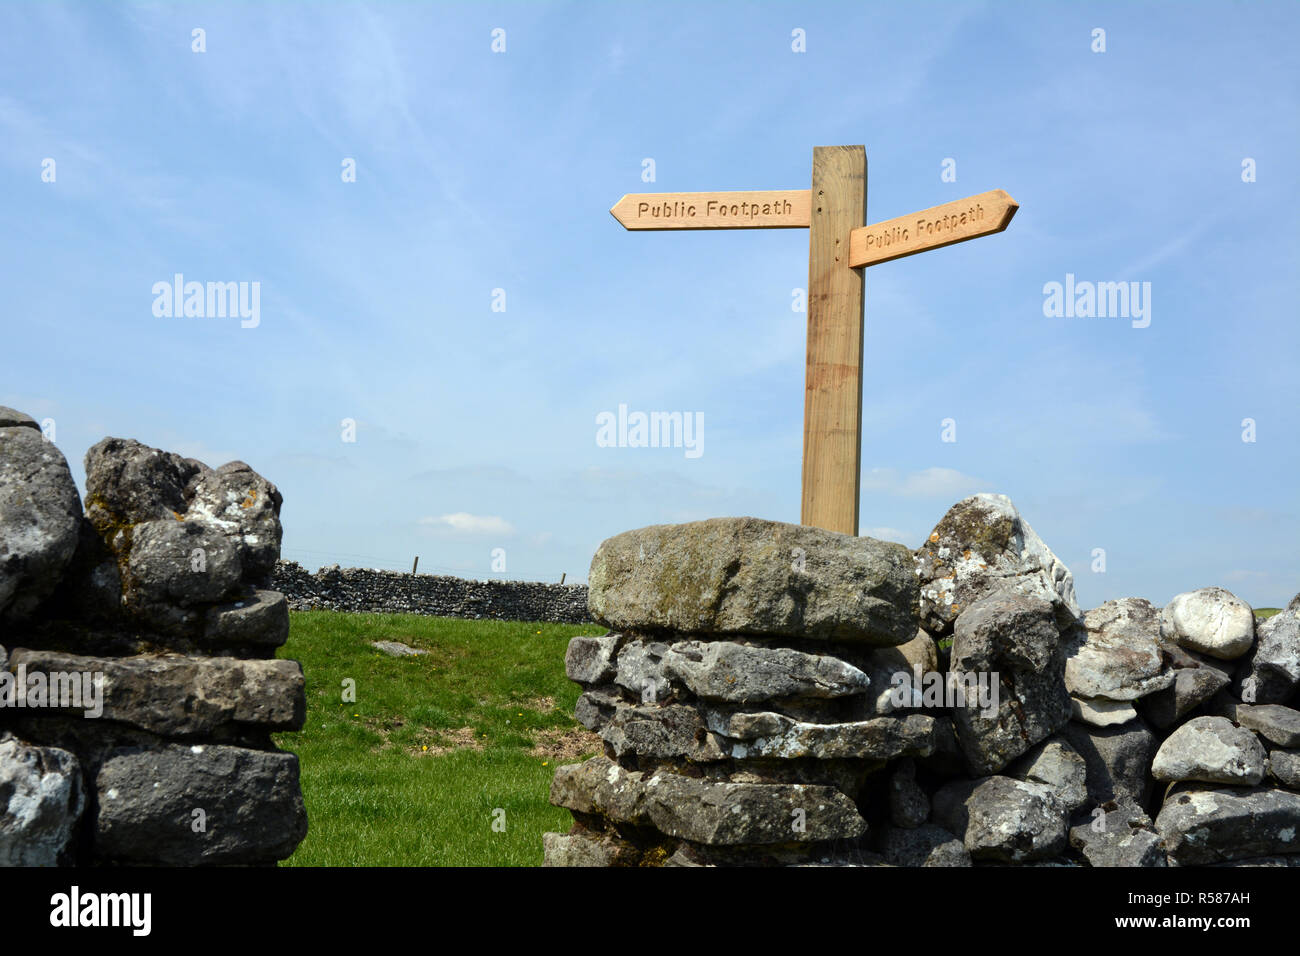 A sign atop a dry stone wall reading 'public footpath' indicating the direction of The Dales Way hiking trail in Yorkshire, England, United Kingdom - Stock Image